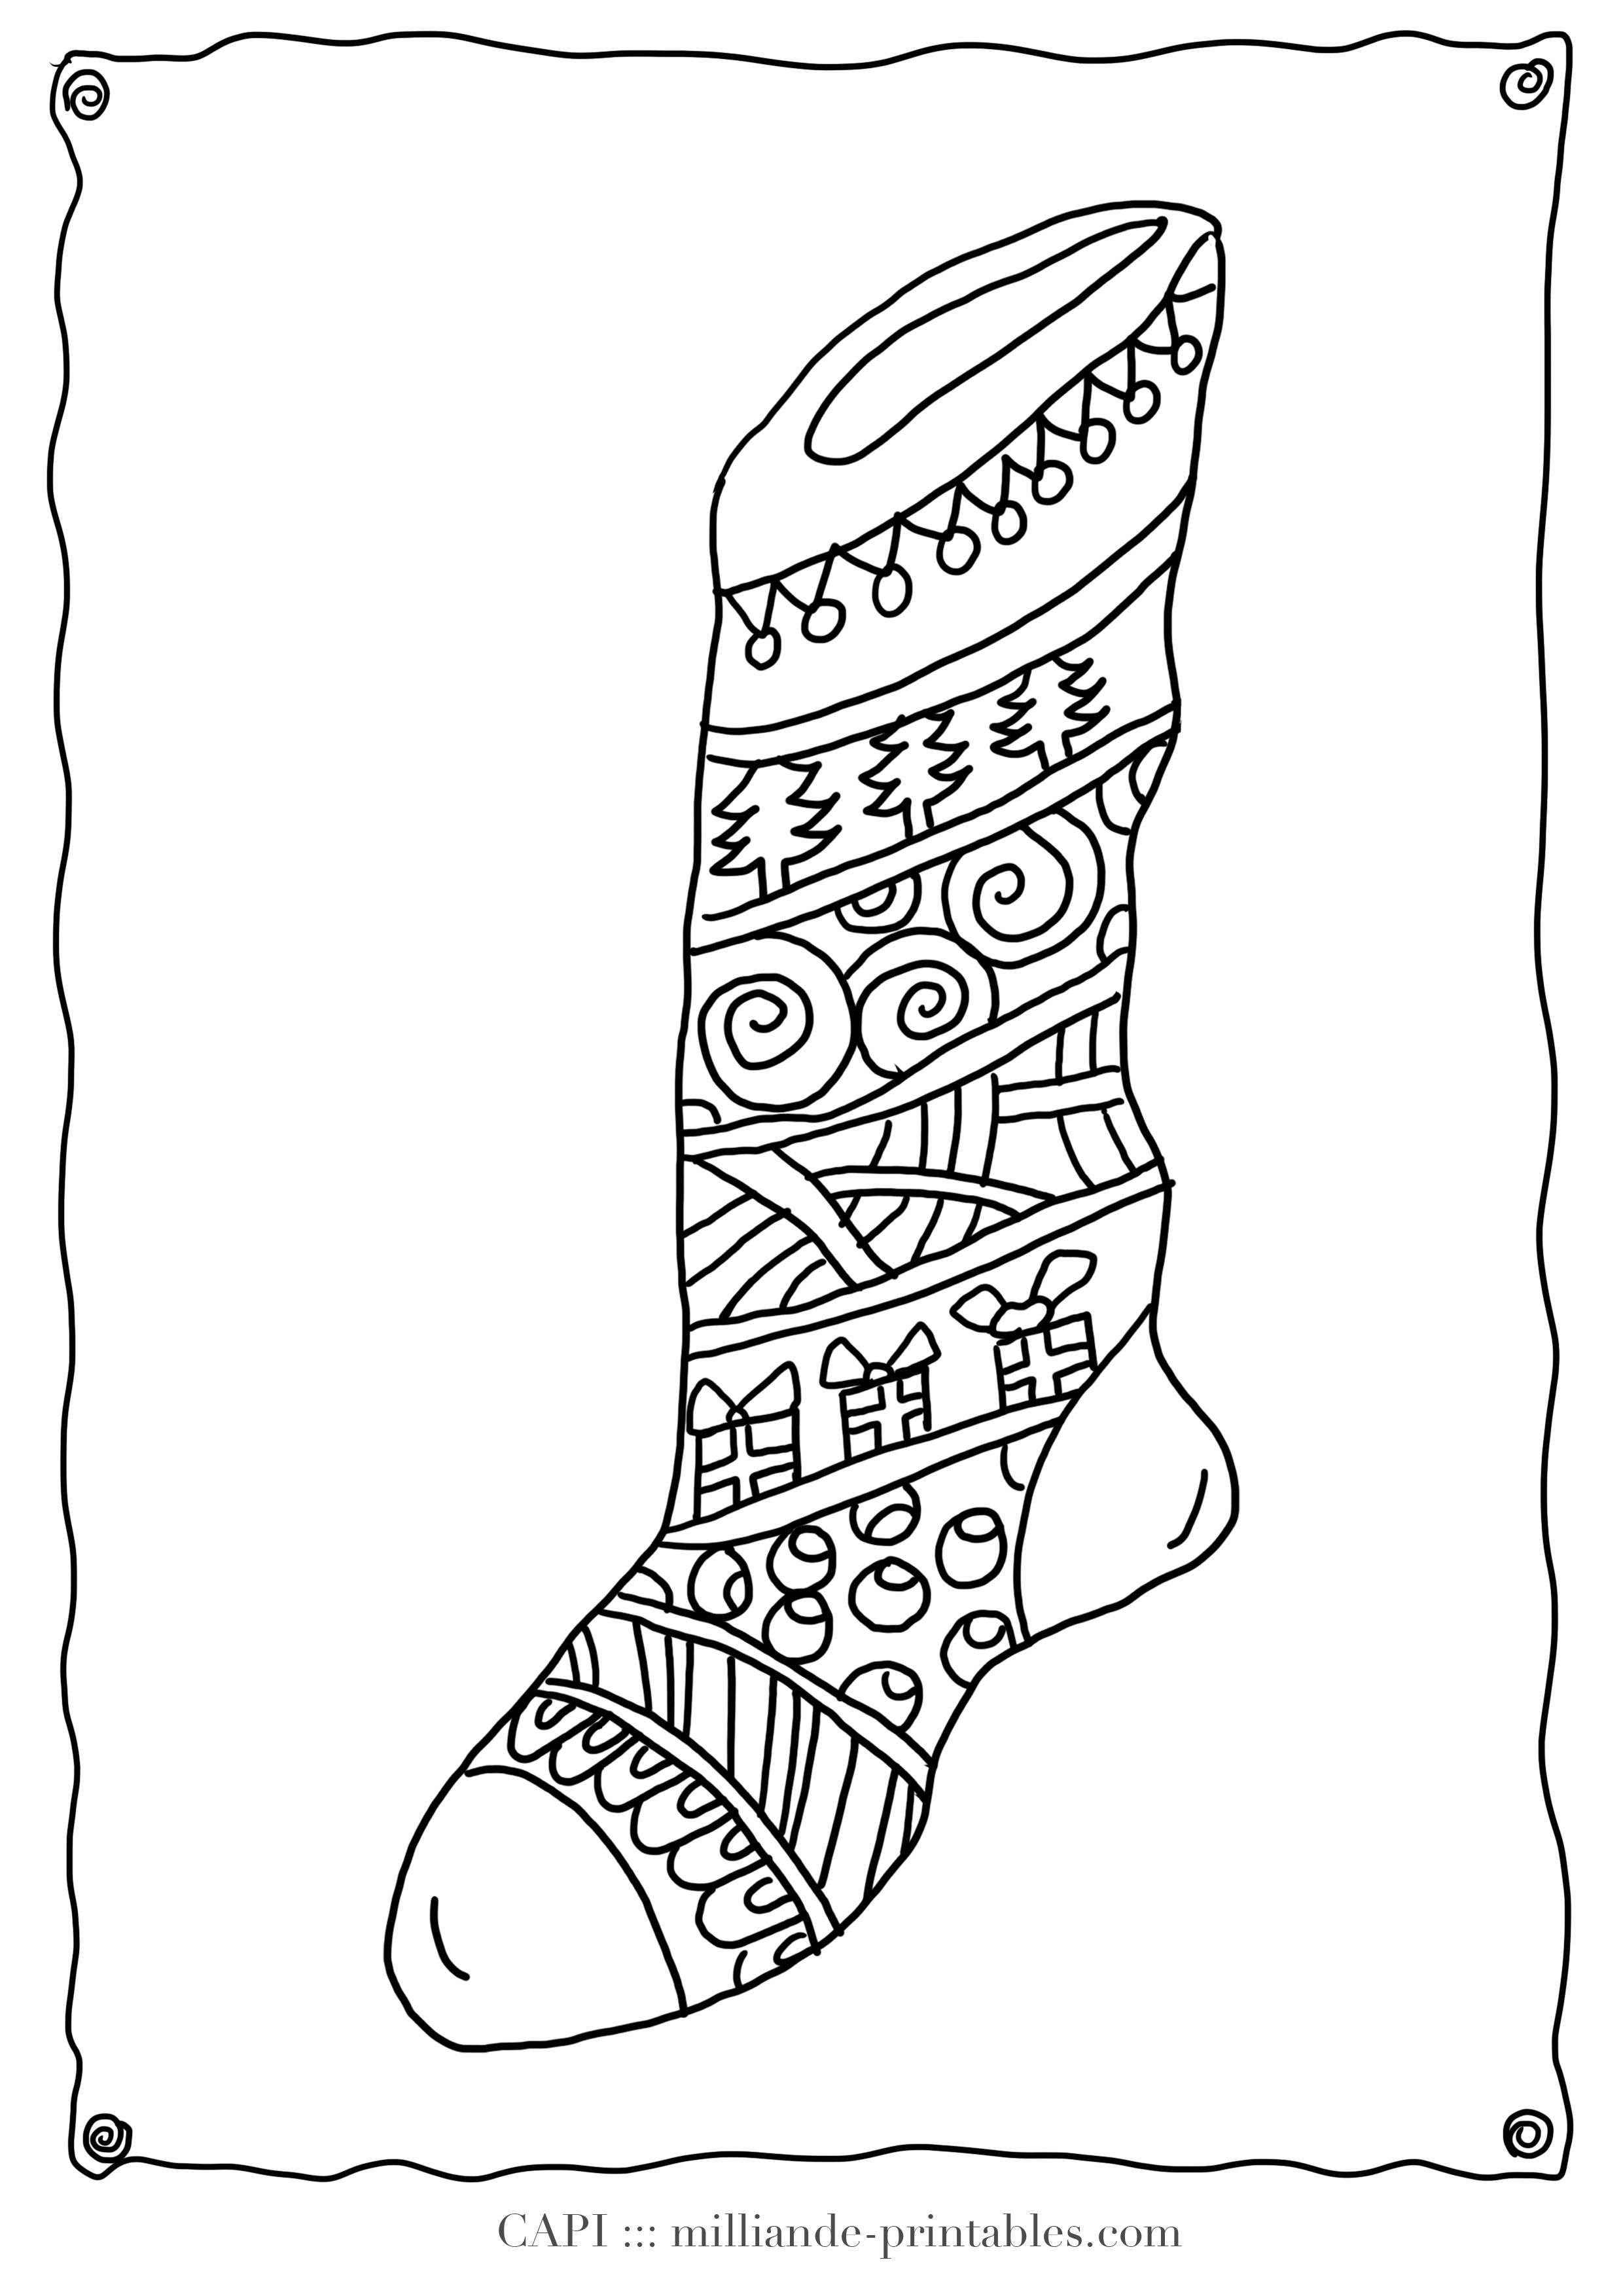 Christmas Coloring Pages Of Stockings With Page Stocking Milliande S Original Free